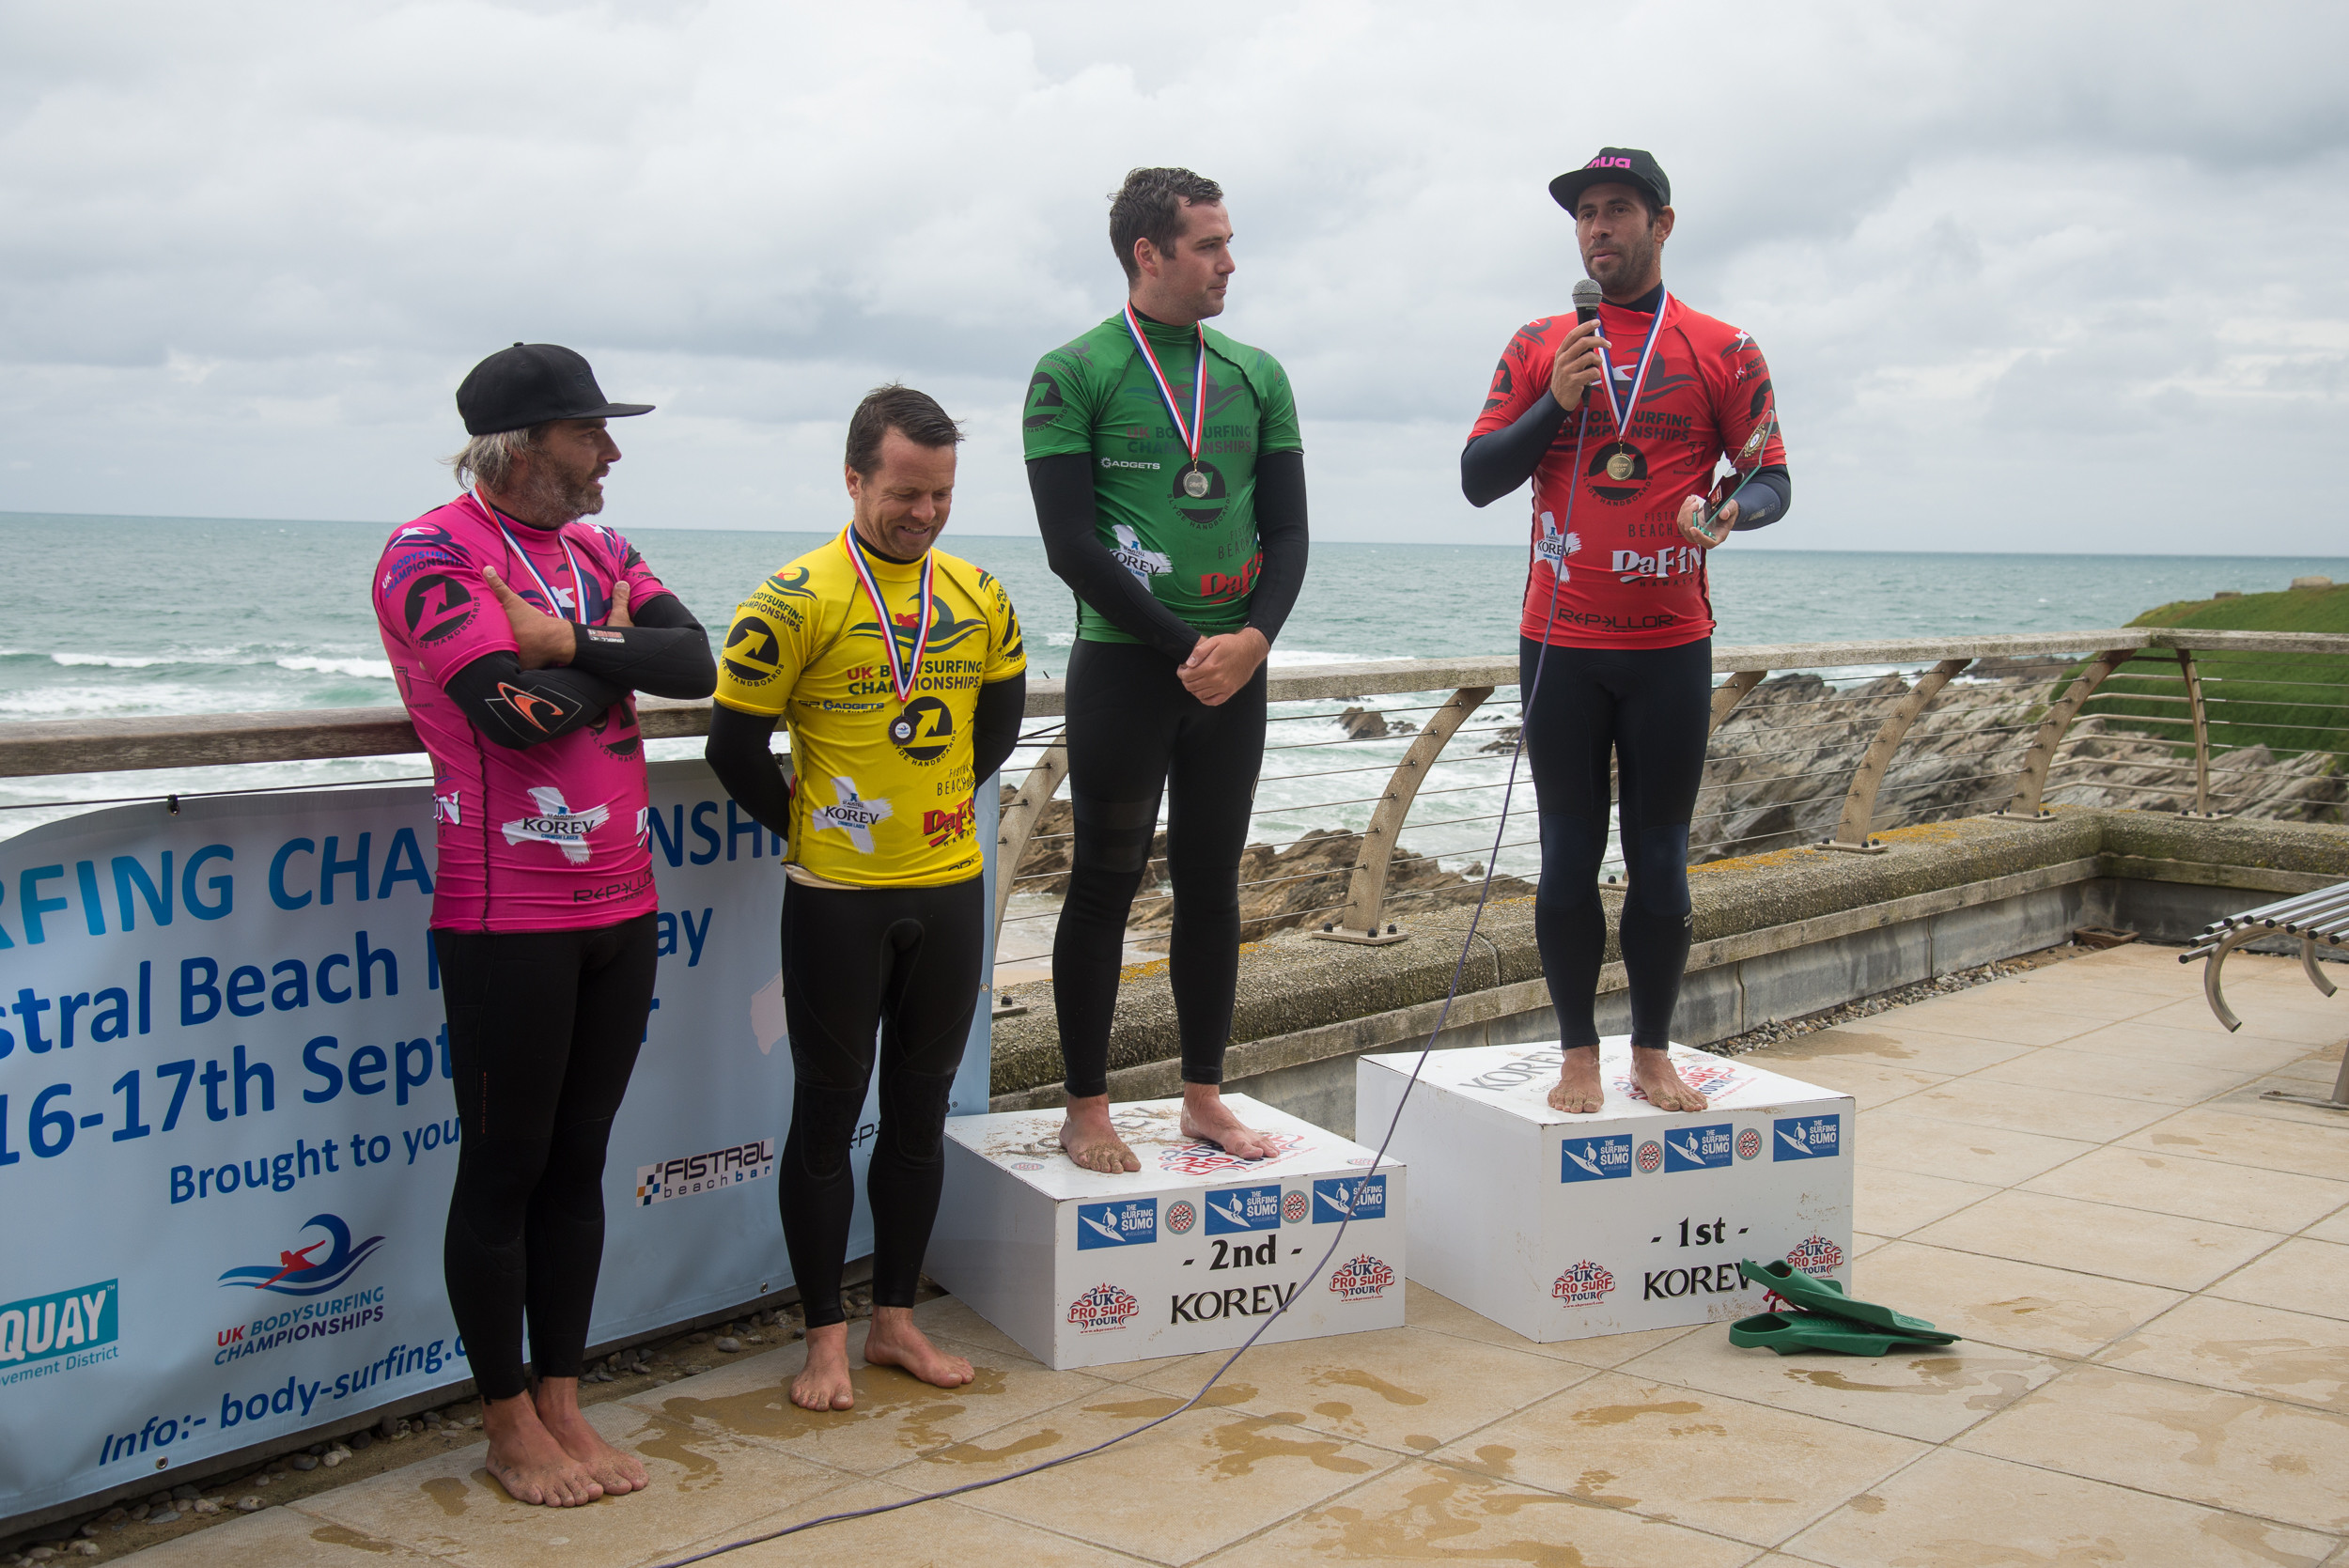 Slyde Handboards UK Bodysurfing Championships 2017 winners - Miguel Rocha (1st), Jack Middleton (2nd), Rui Lopes (3rd) and Nicholas Manacas (4th)